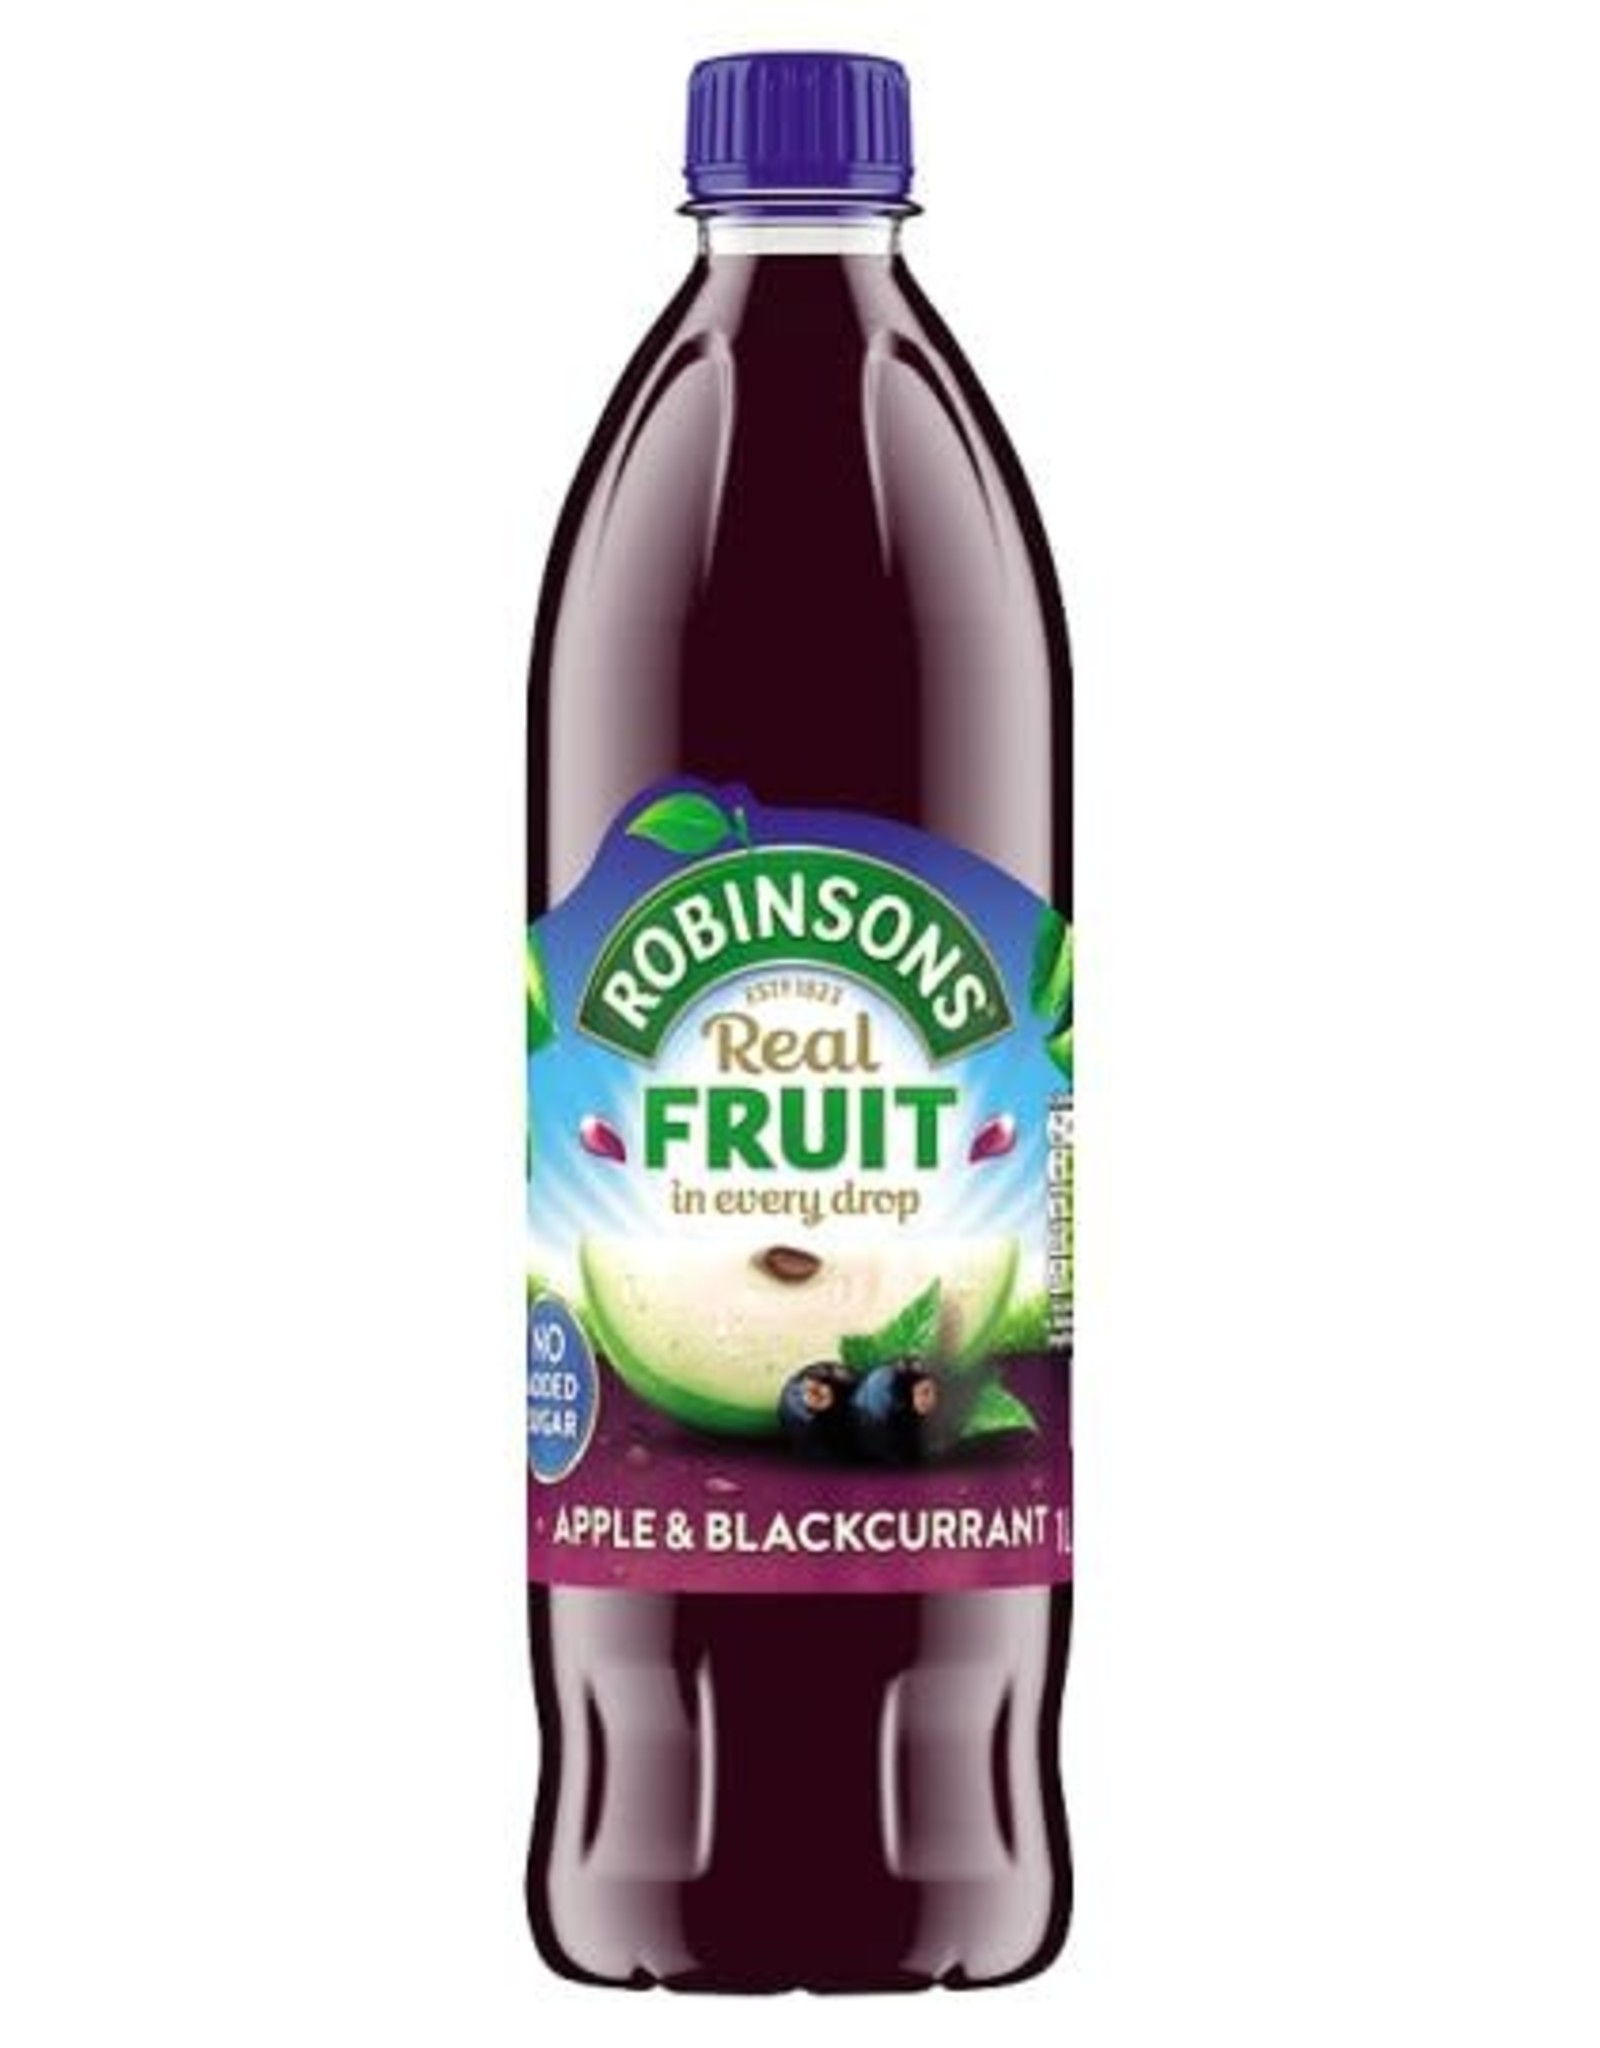 Robinson's Robinsons Real Fruit 1 L Apple & Blackcurrant